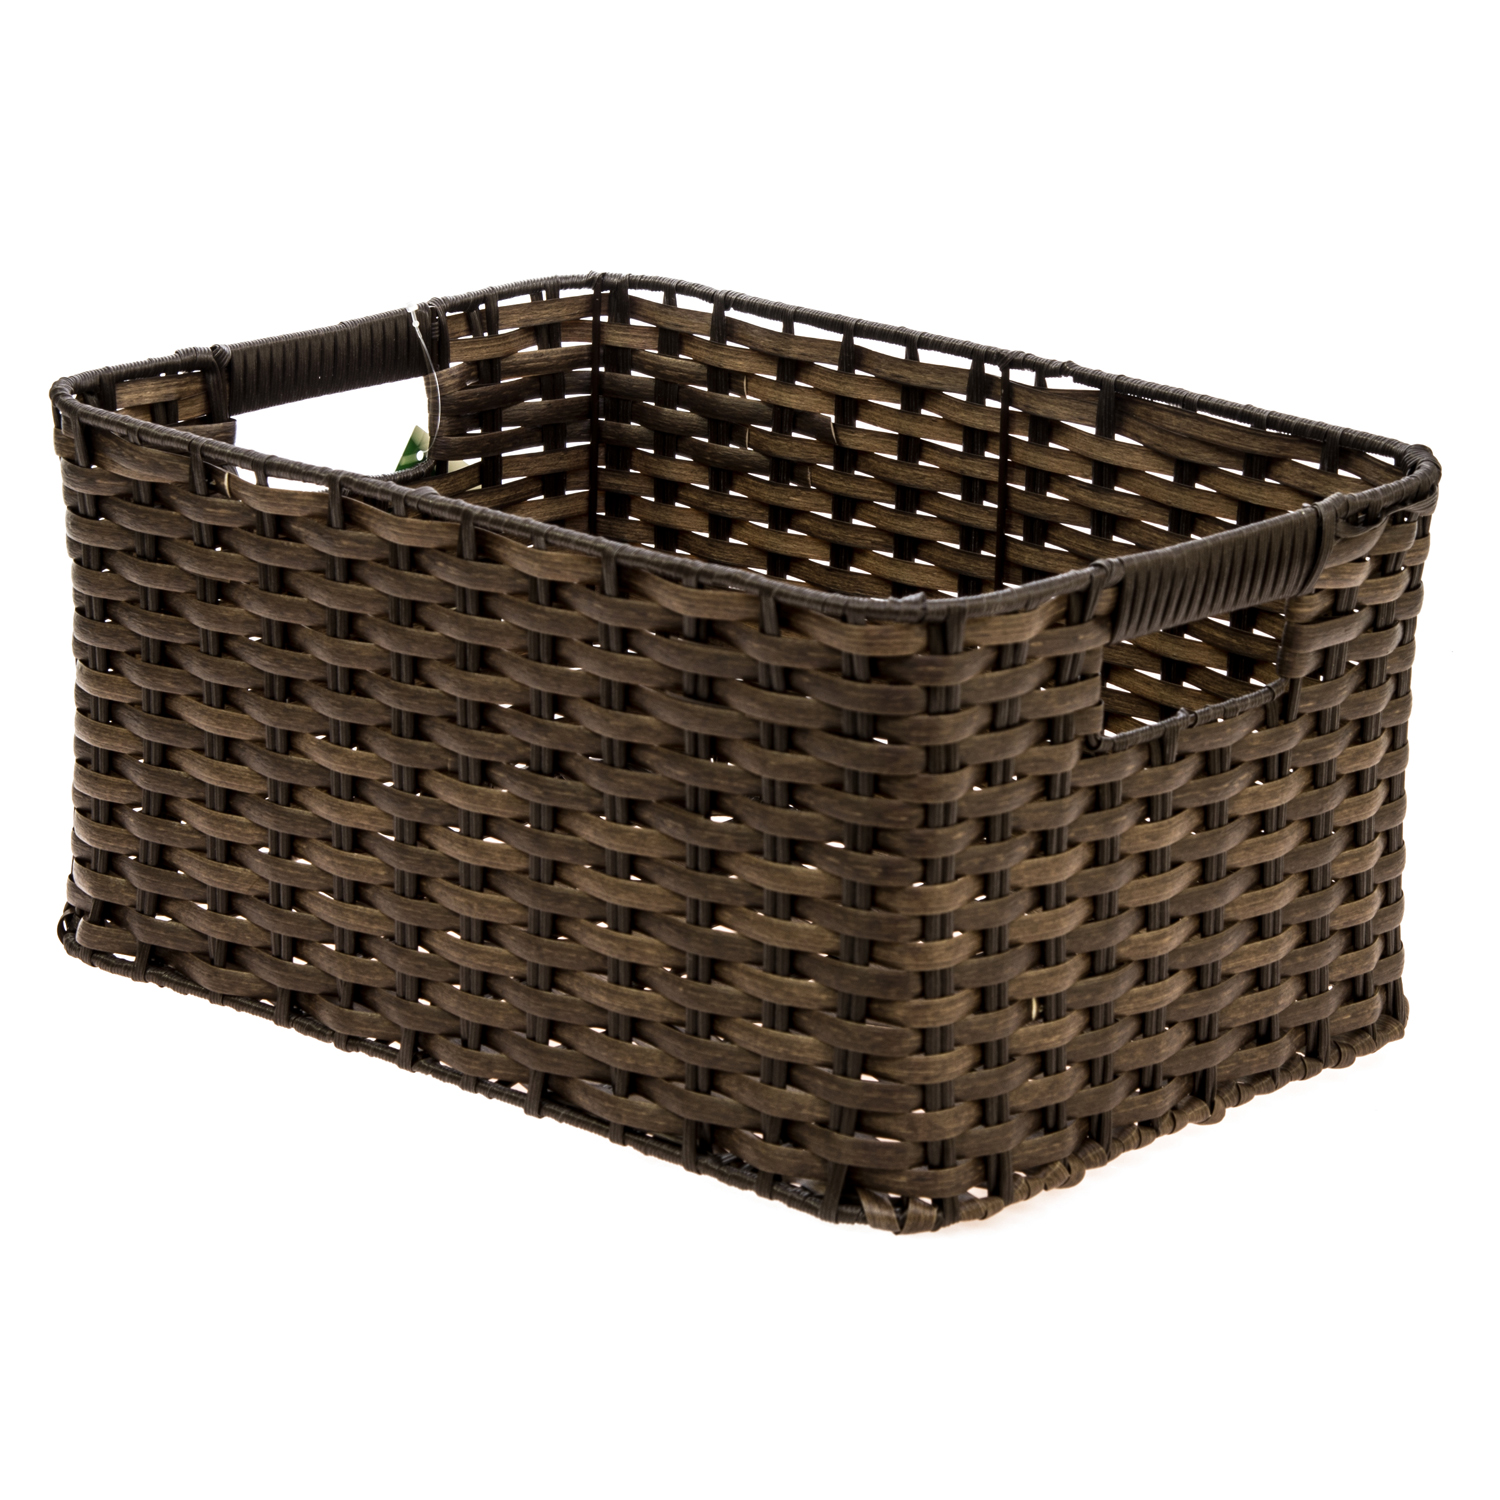 Image of Casa Med Woven Storage, Brown